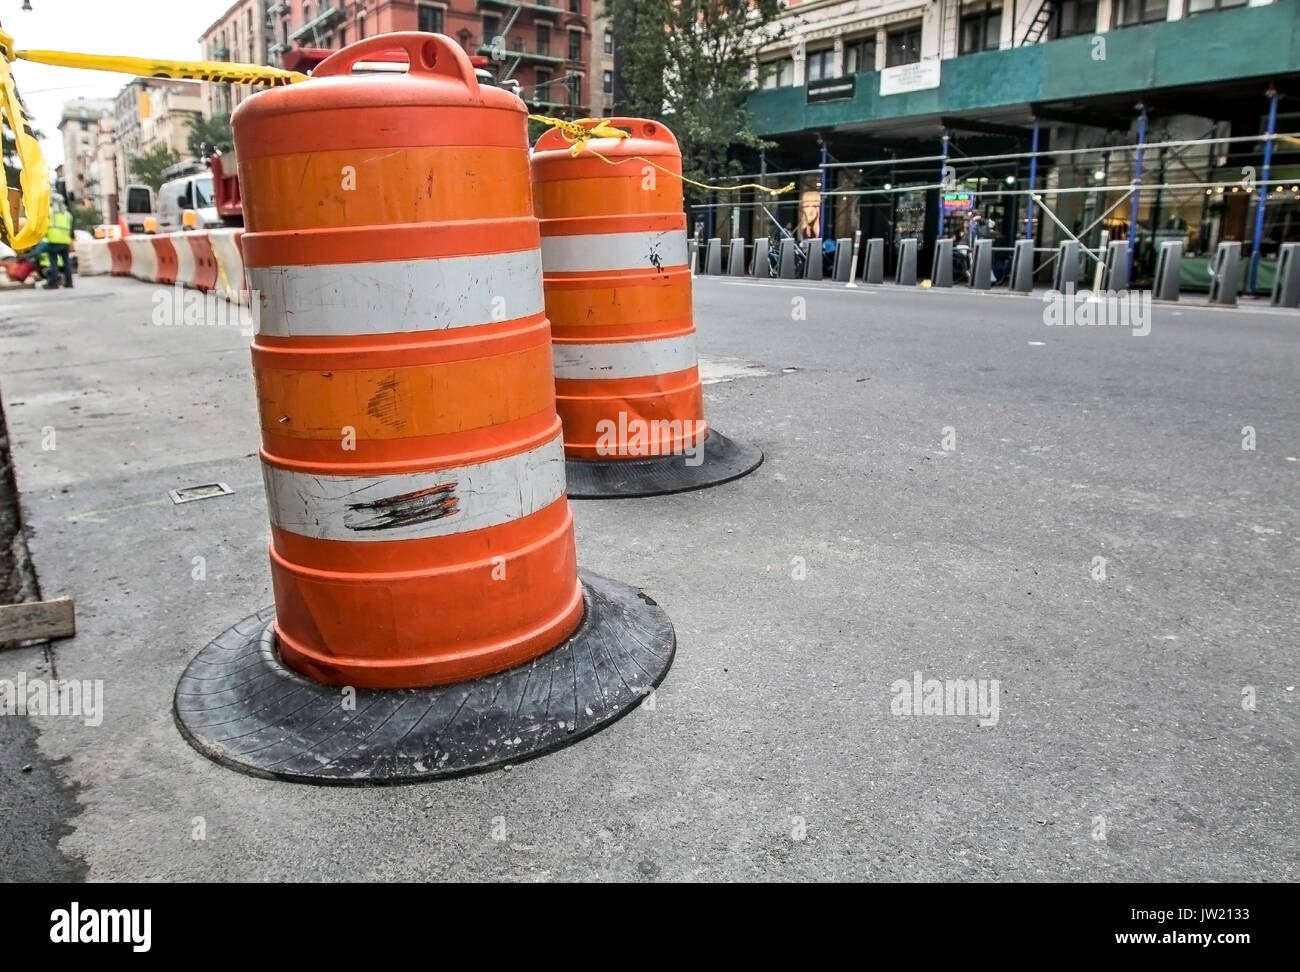 A traffic barricade of orange barrels indicates a site of road construction work in Manhattan. - Stock Image